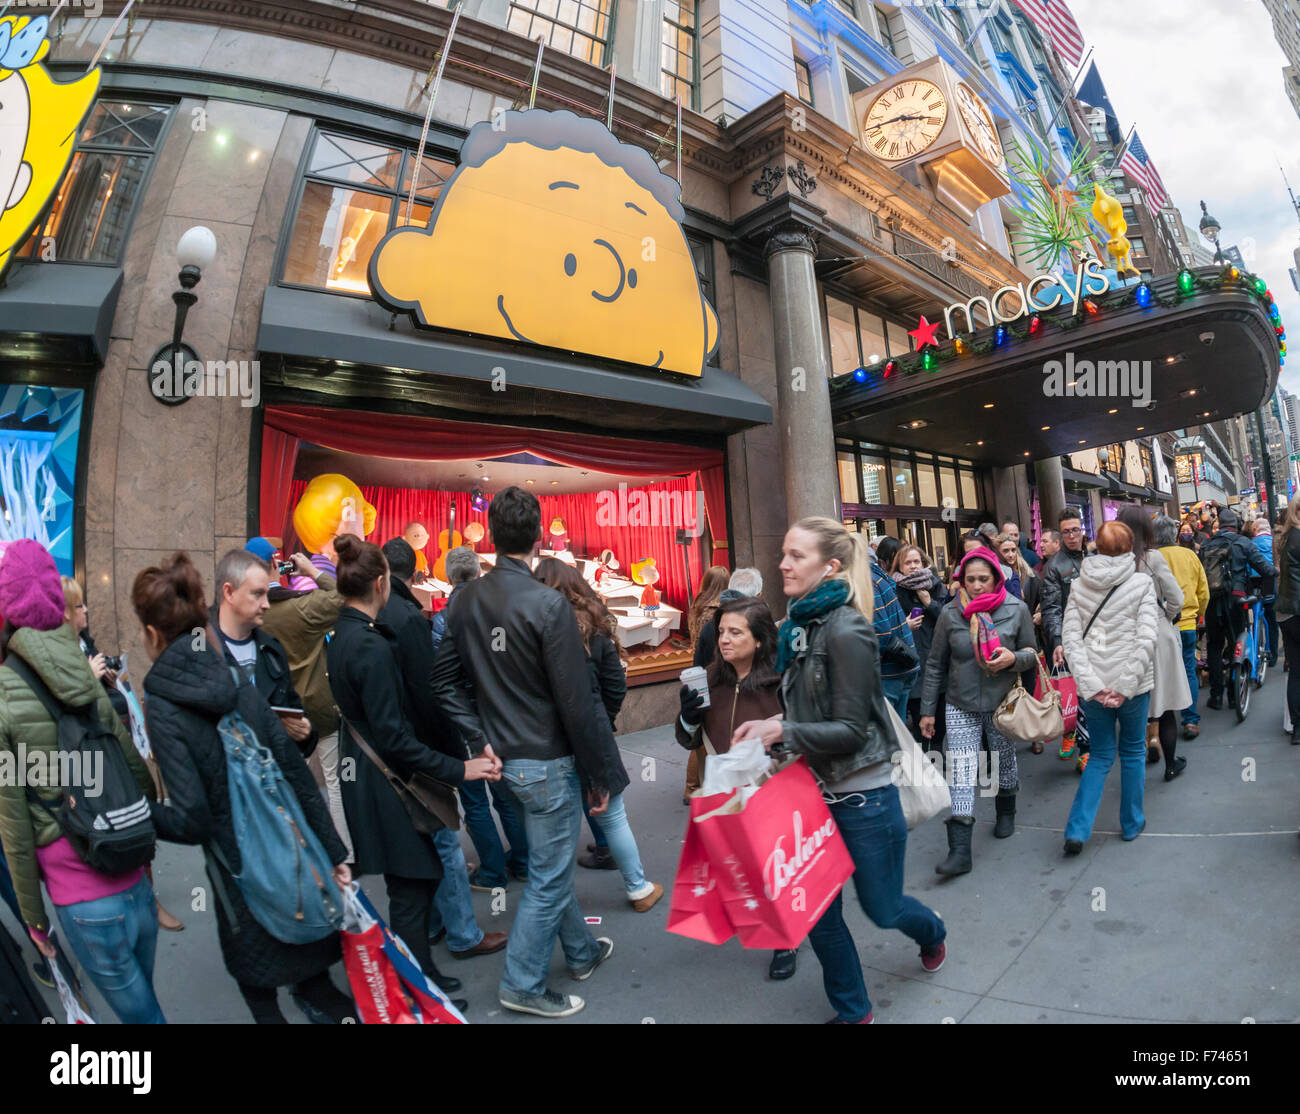 Crowds Of Visitors To Macy's Herald Square In New York